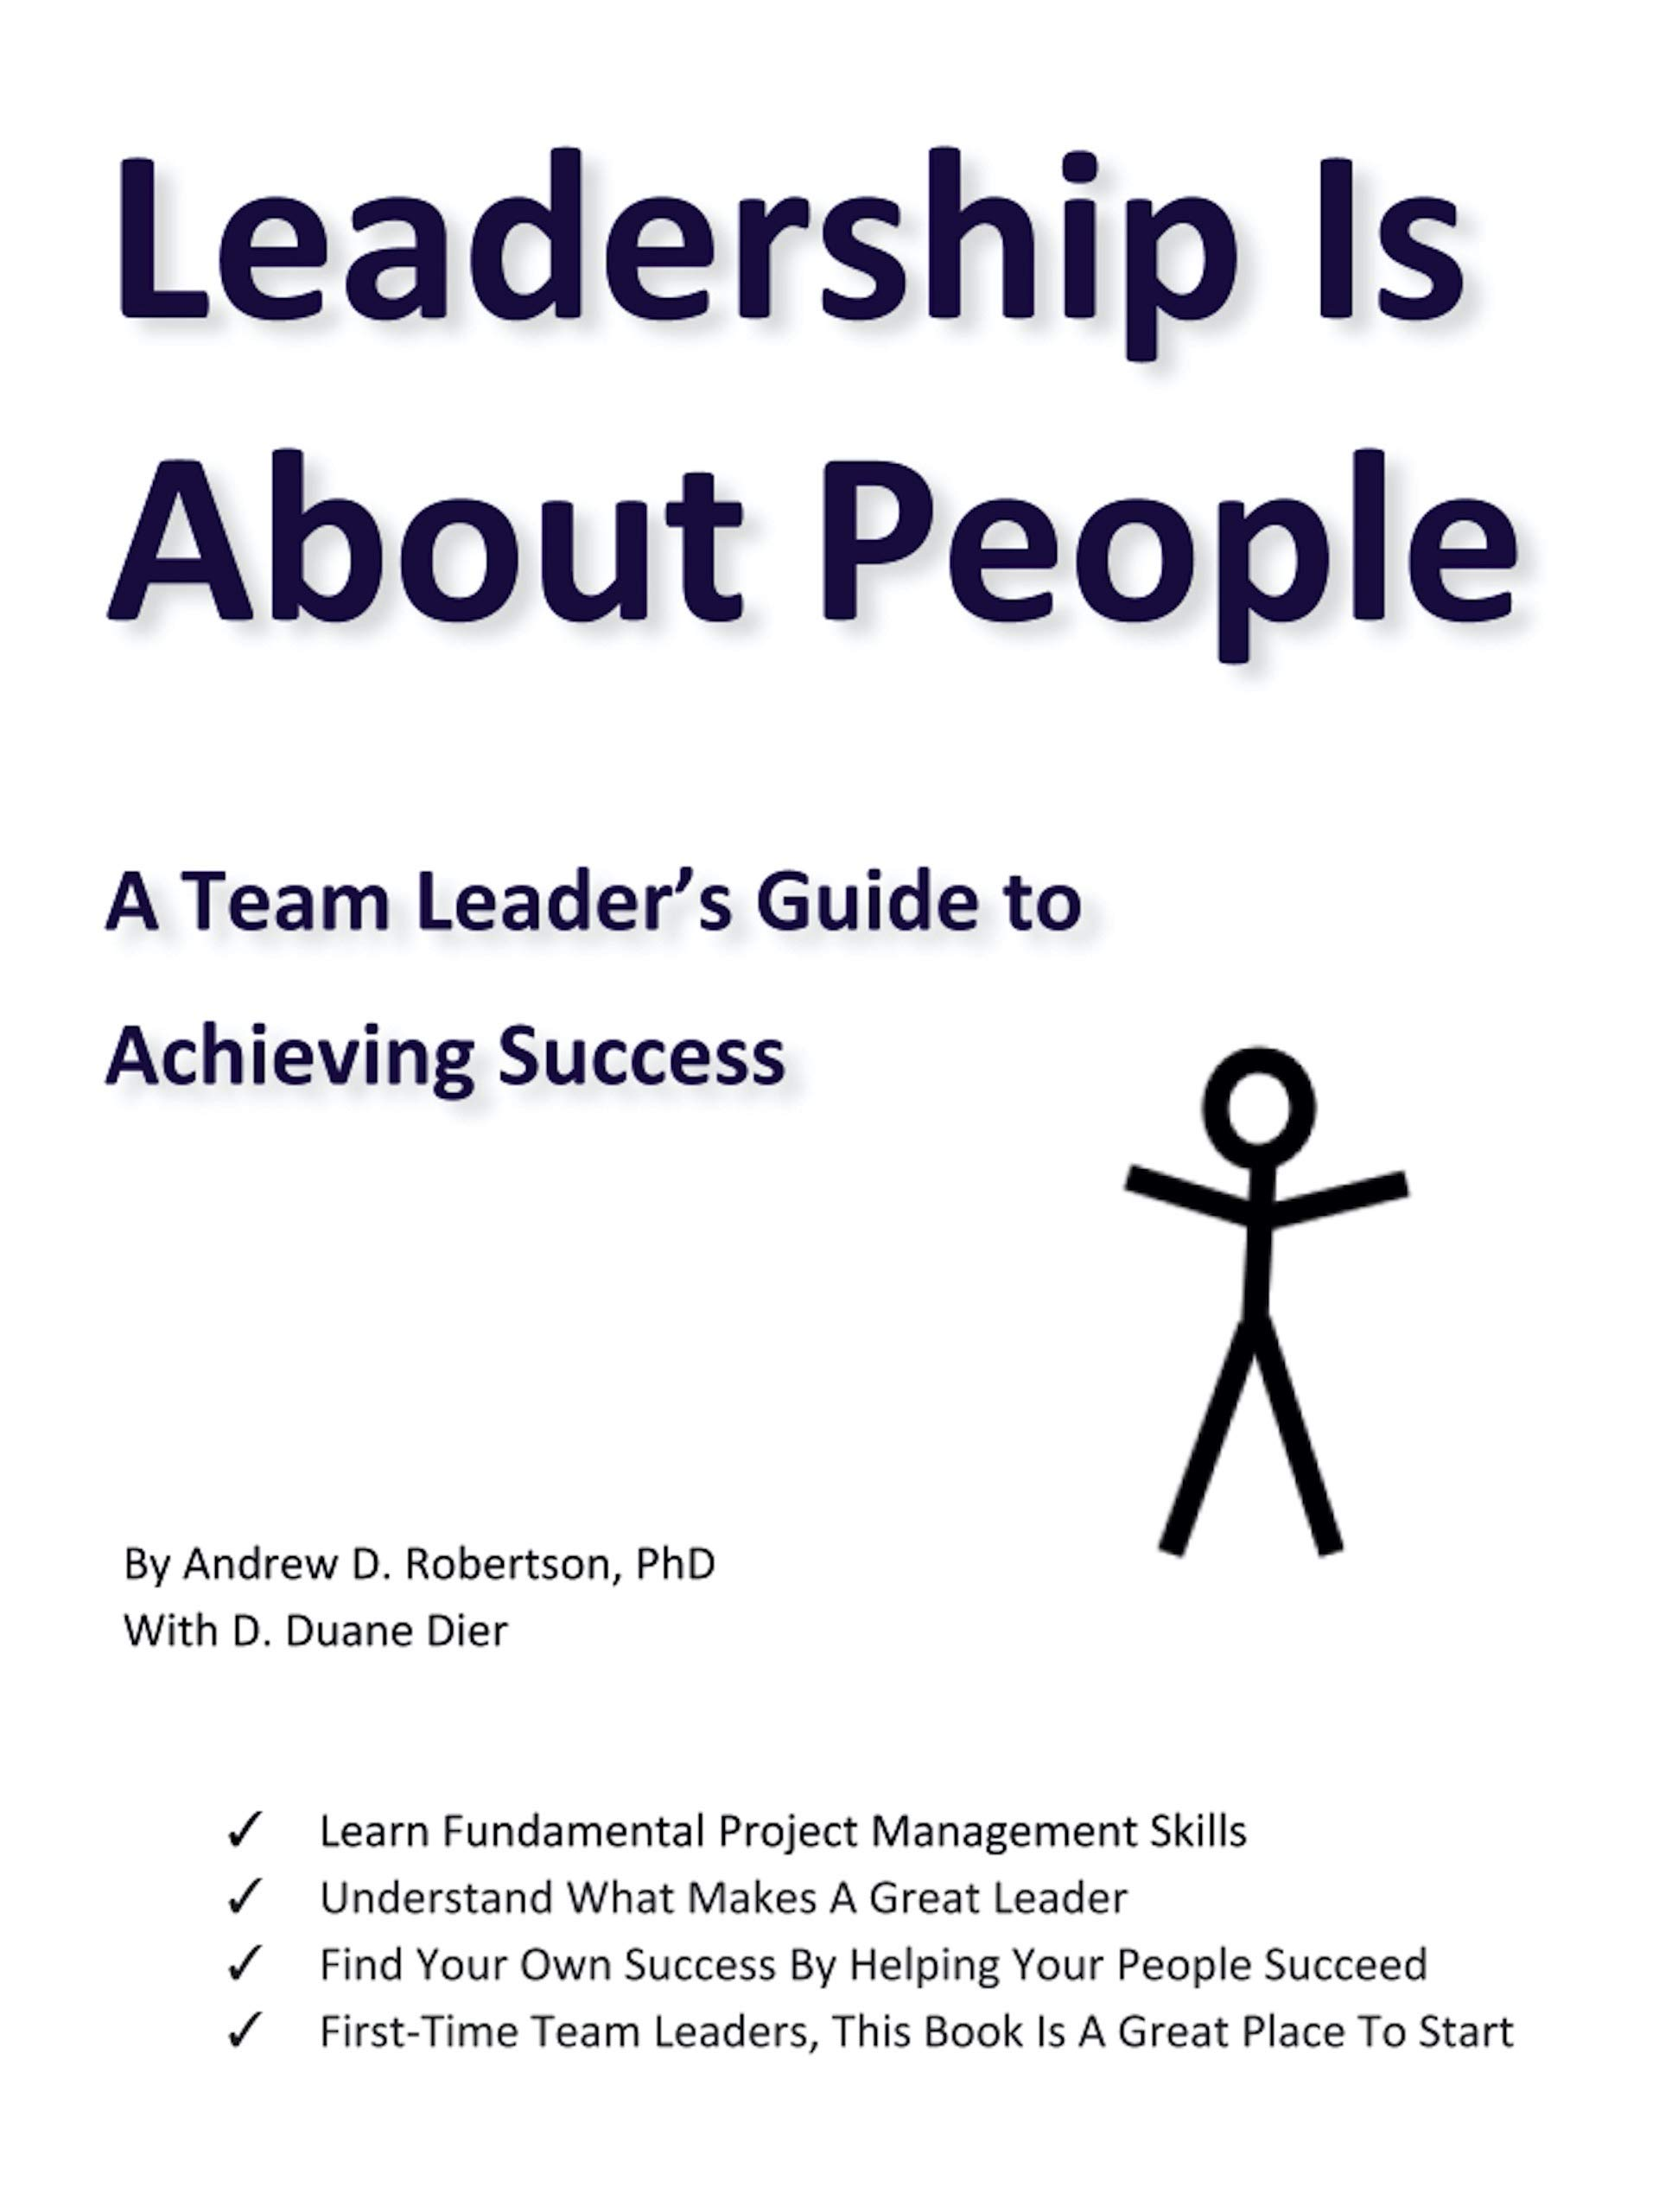 Leadership Is About People: A Team Leader's Guide to Achieving Success